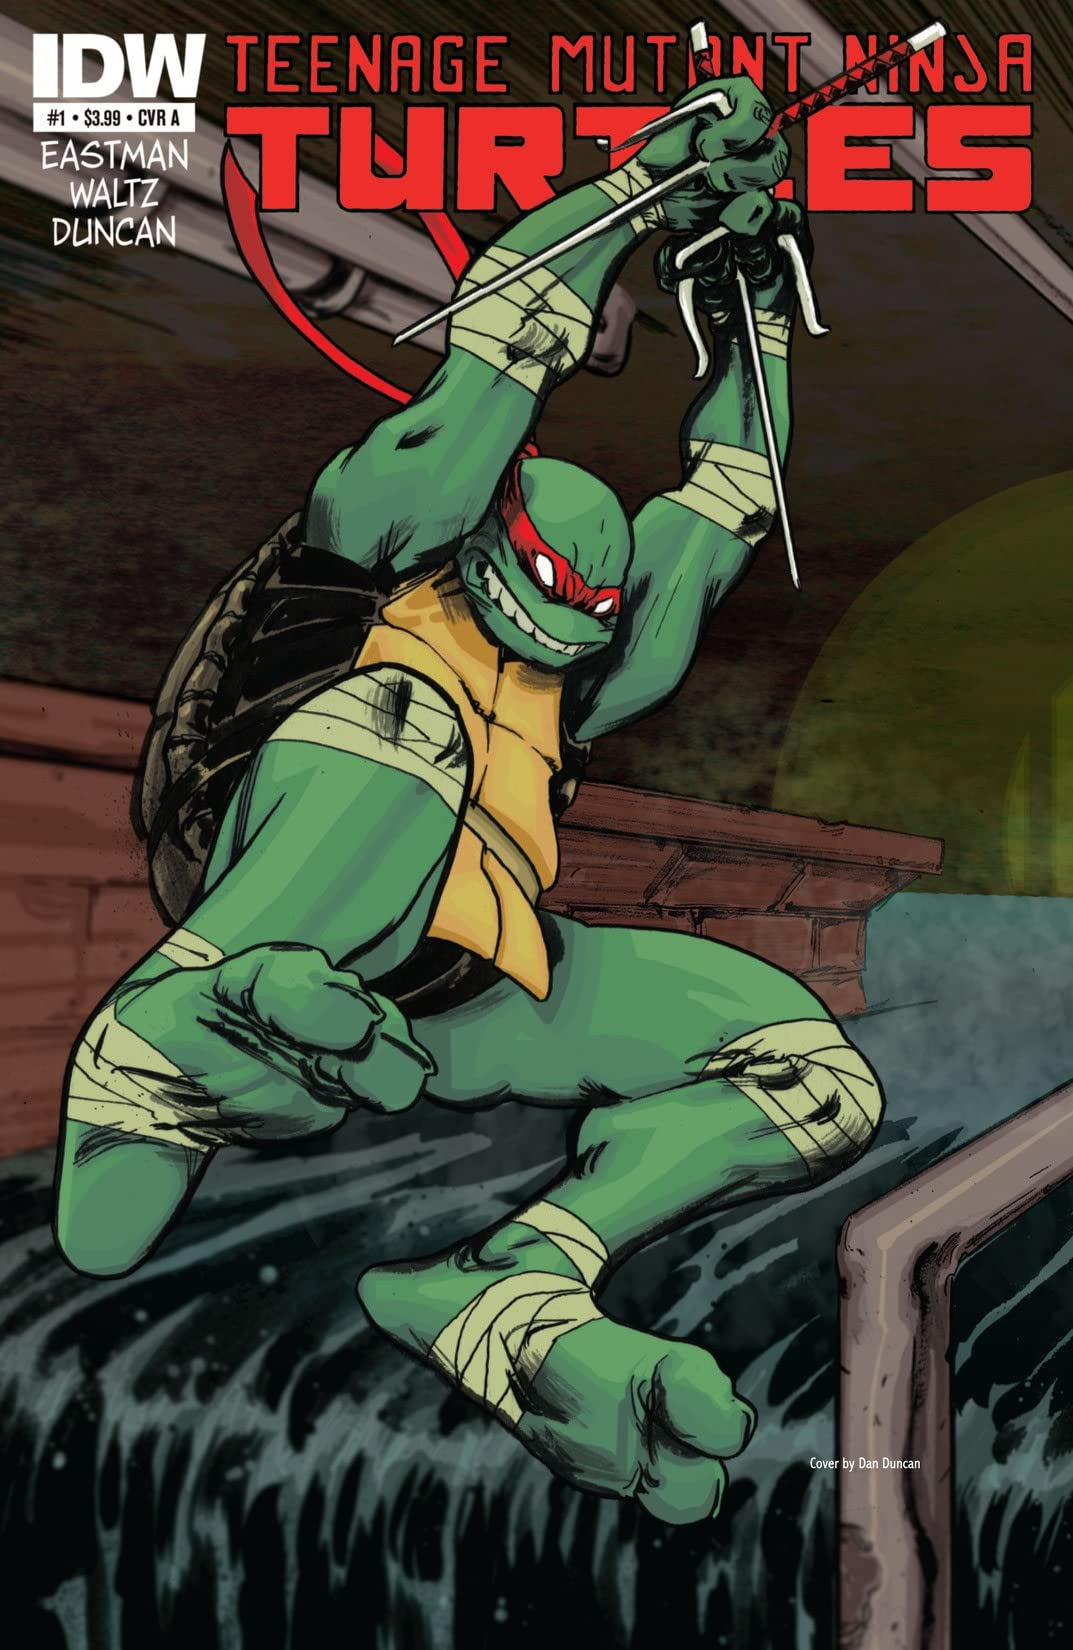 Teenage Mutant Ninja Turtles #1